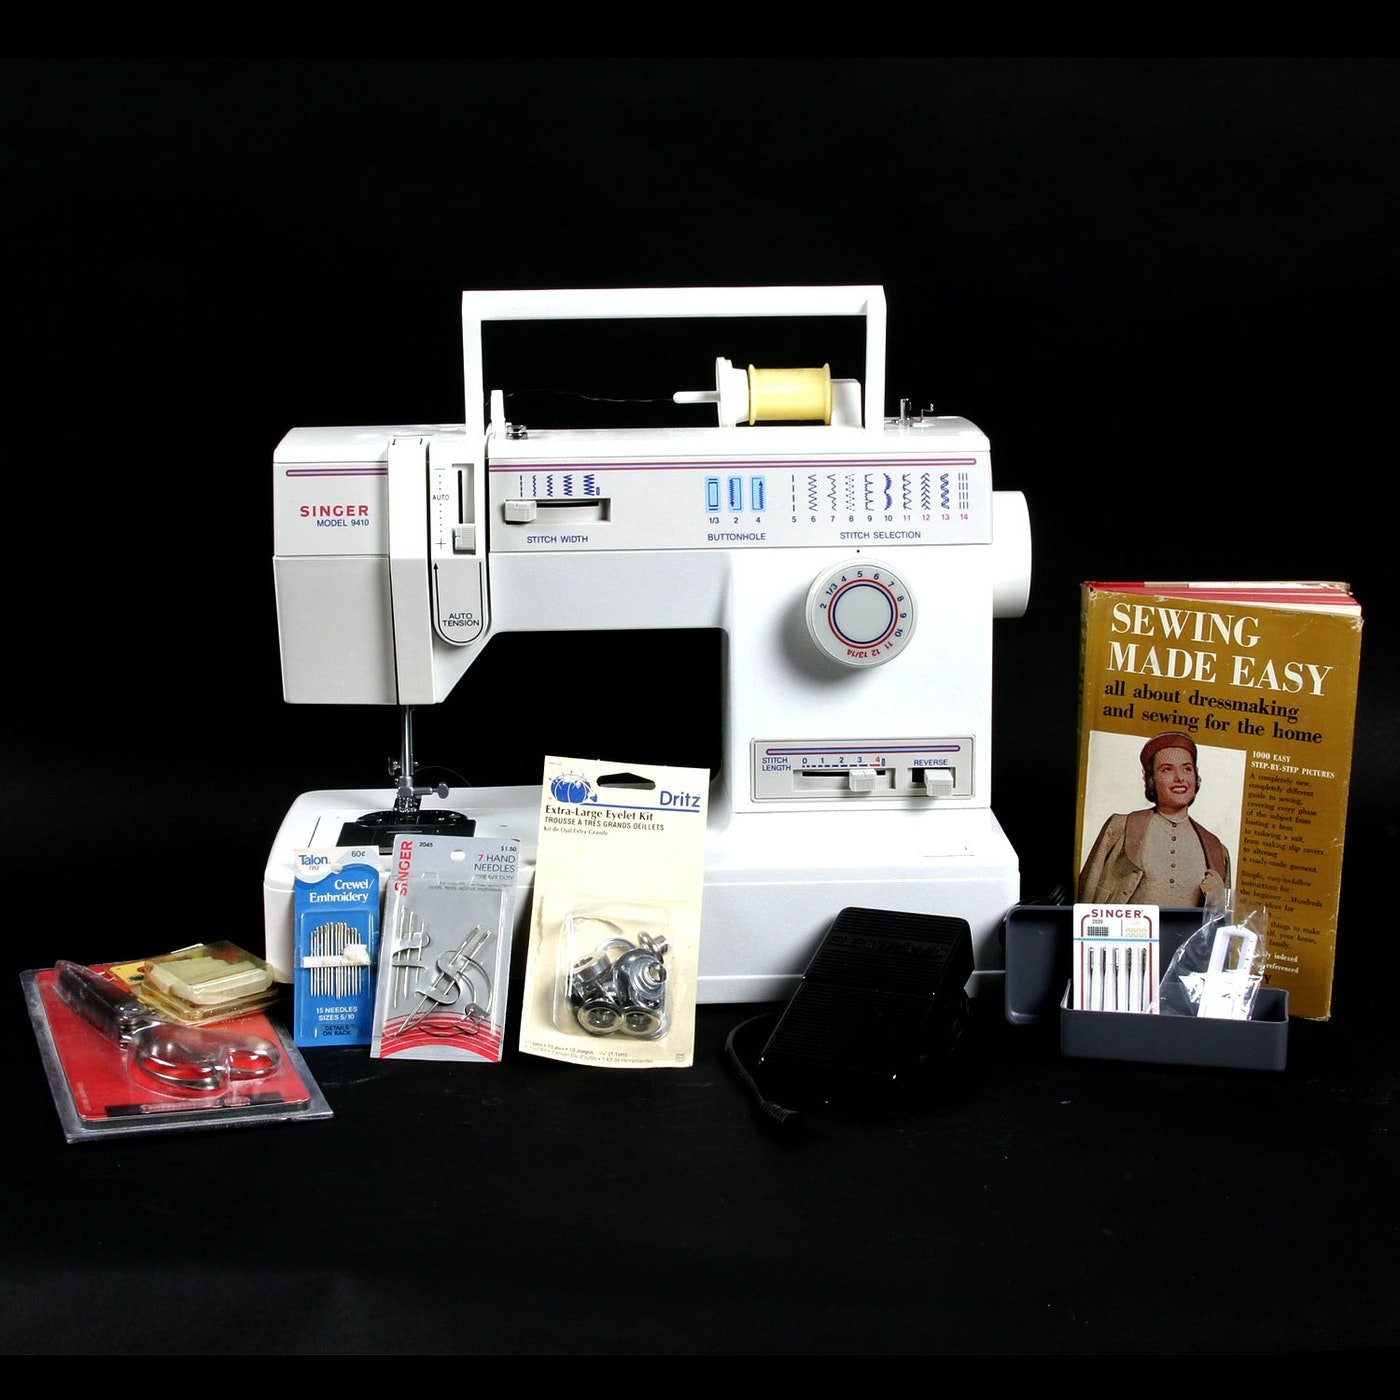 Singer Sewing Machine Model 9410 Quotes 9420 9432 Threading Diagram Free Diagrams From Www Sewusa Related Keywords